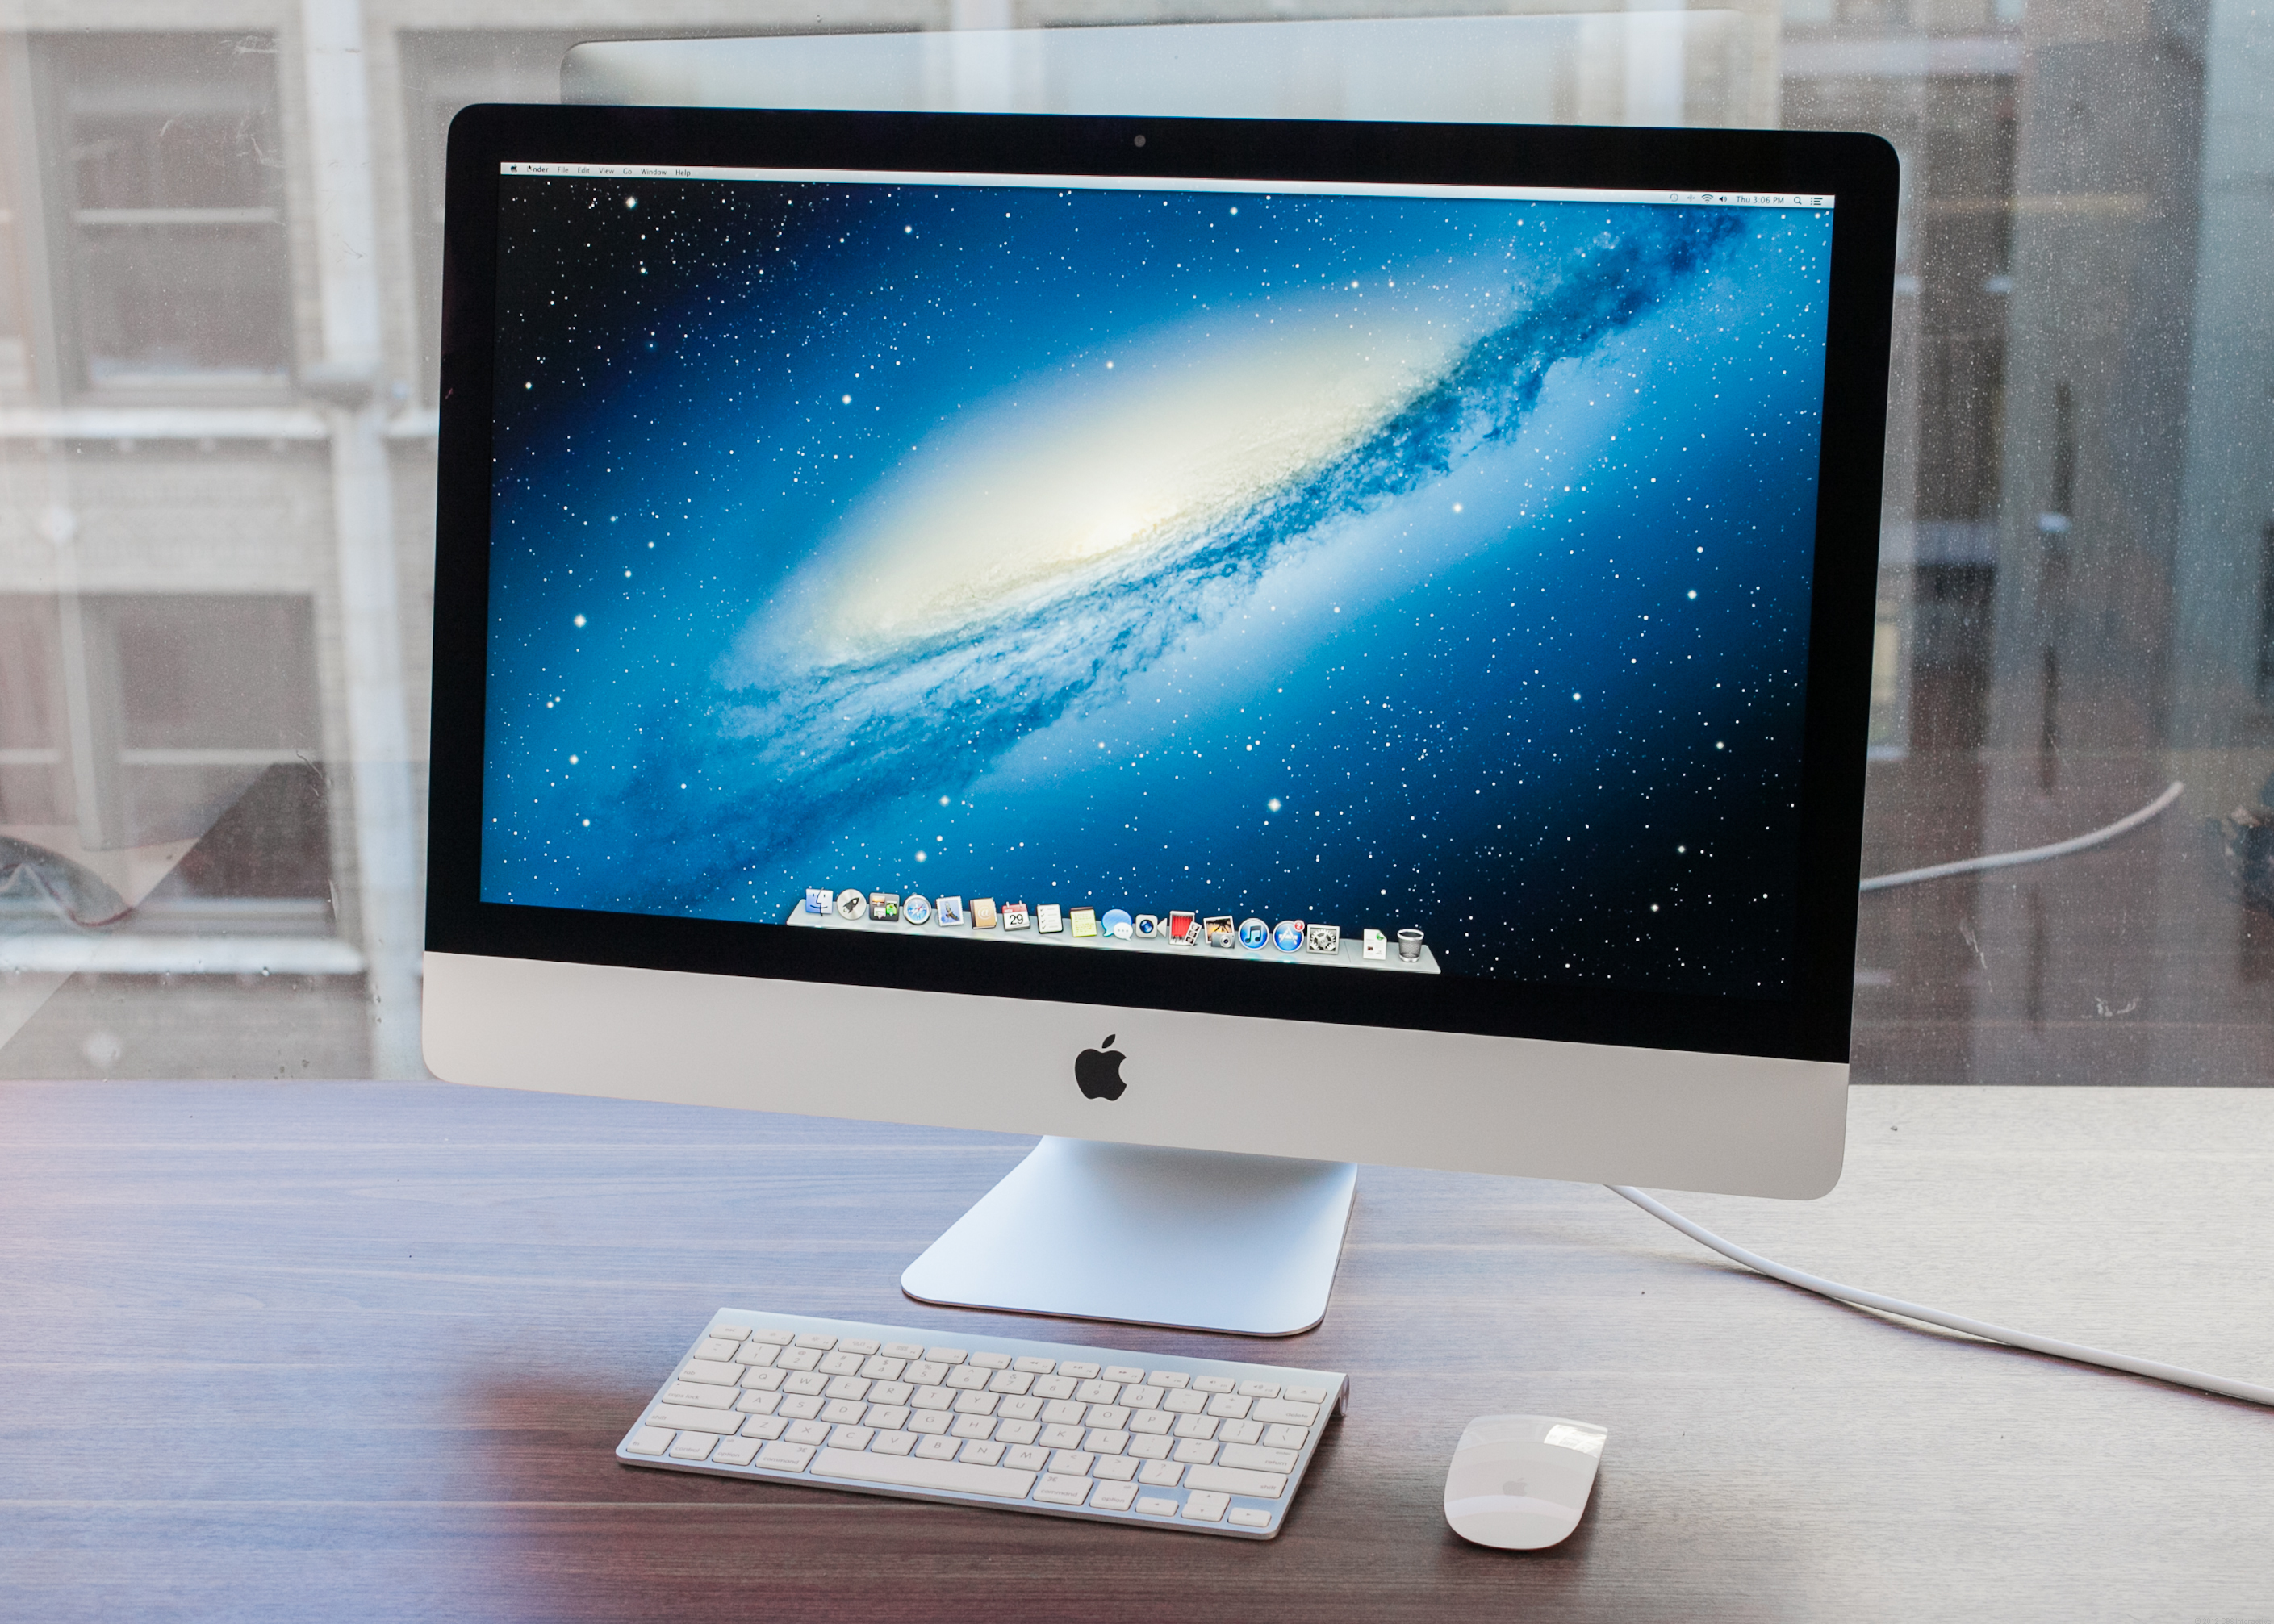 Apple iMac (21.5-inch, 2.7GHz, fall 2012)